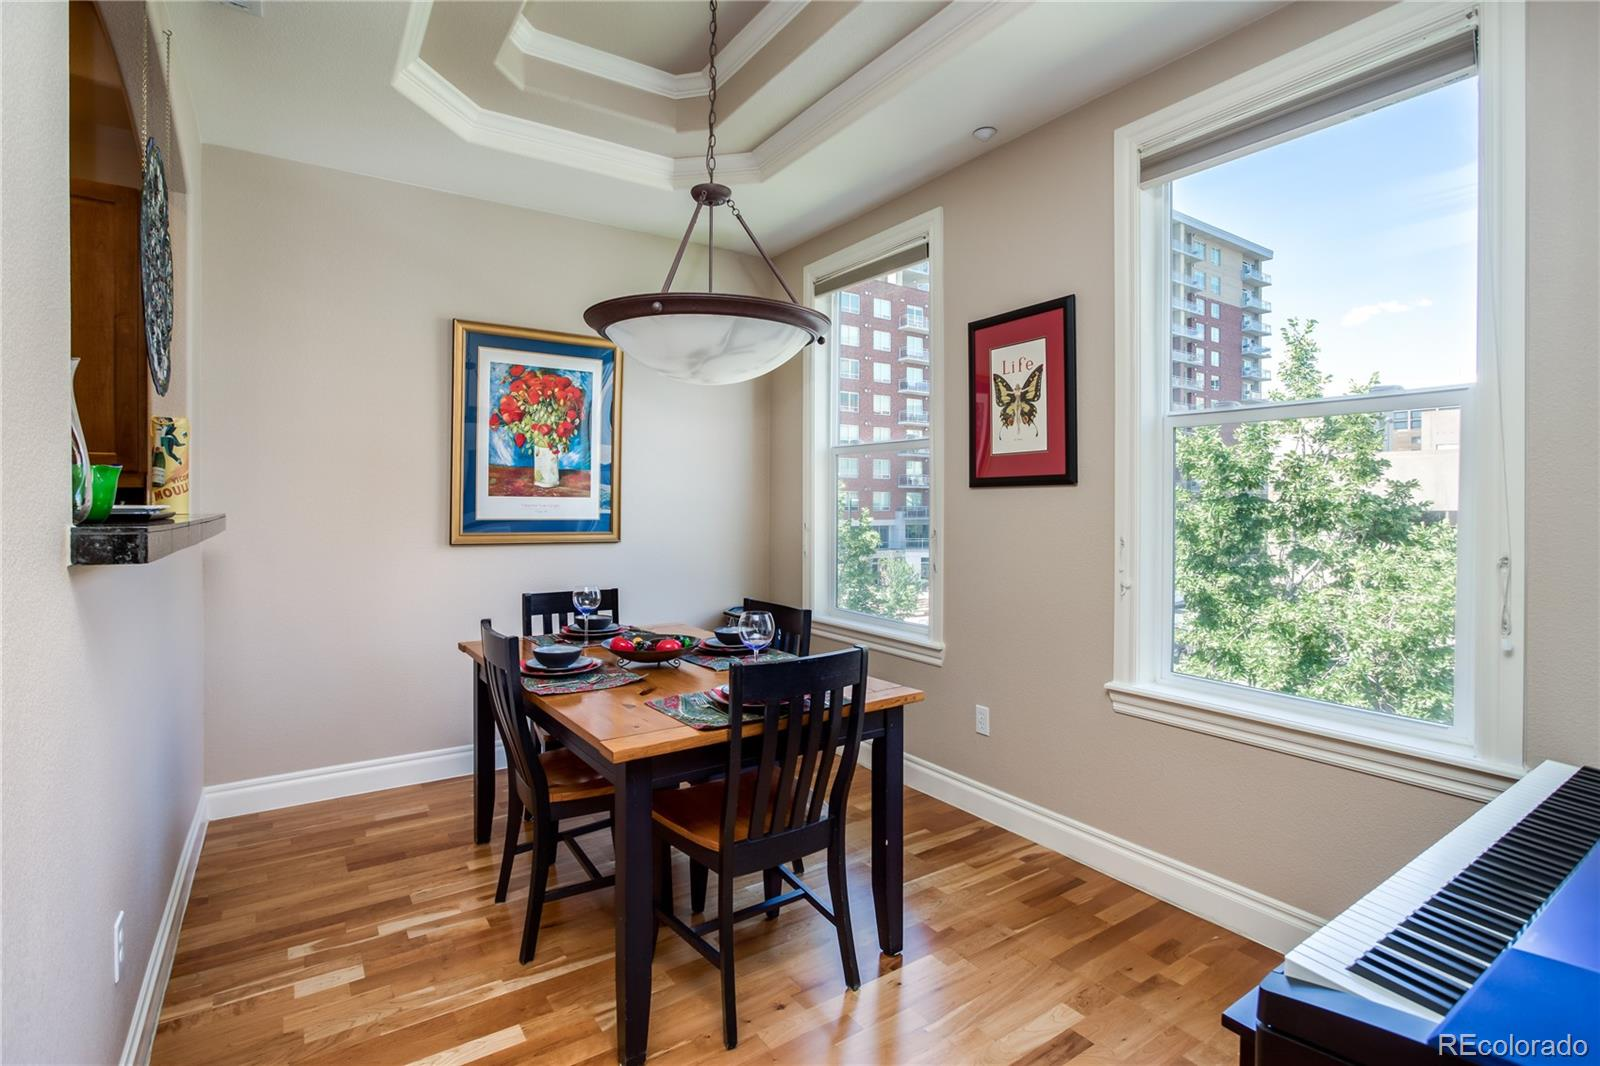 MLS# 3445243 - 5 - 40 Madison Street #303, Denver, CO 80206